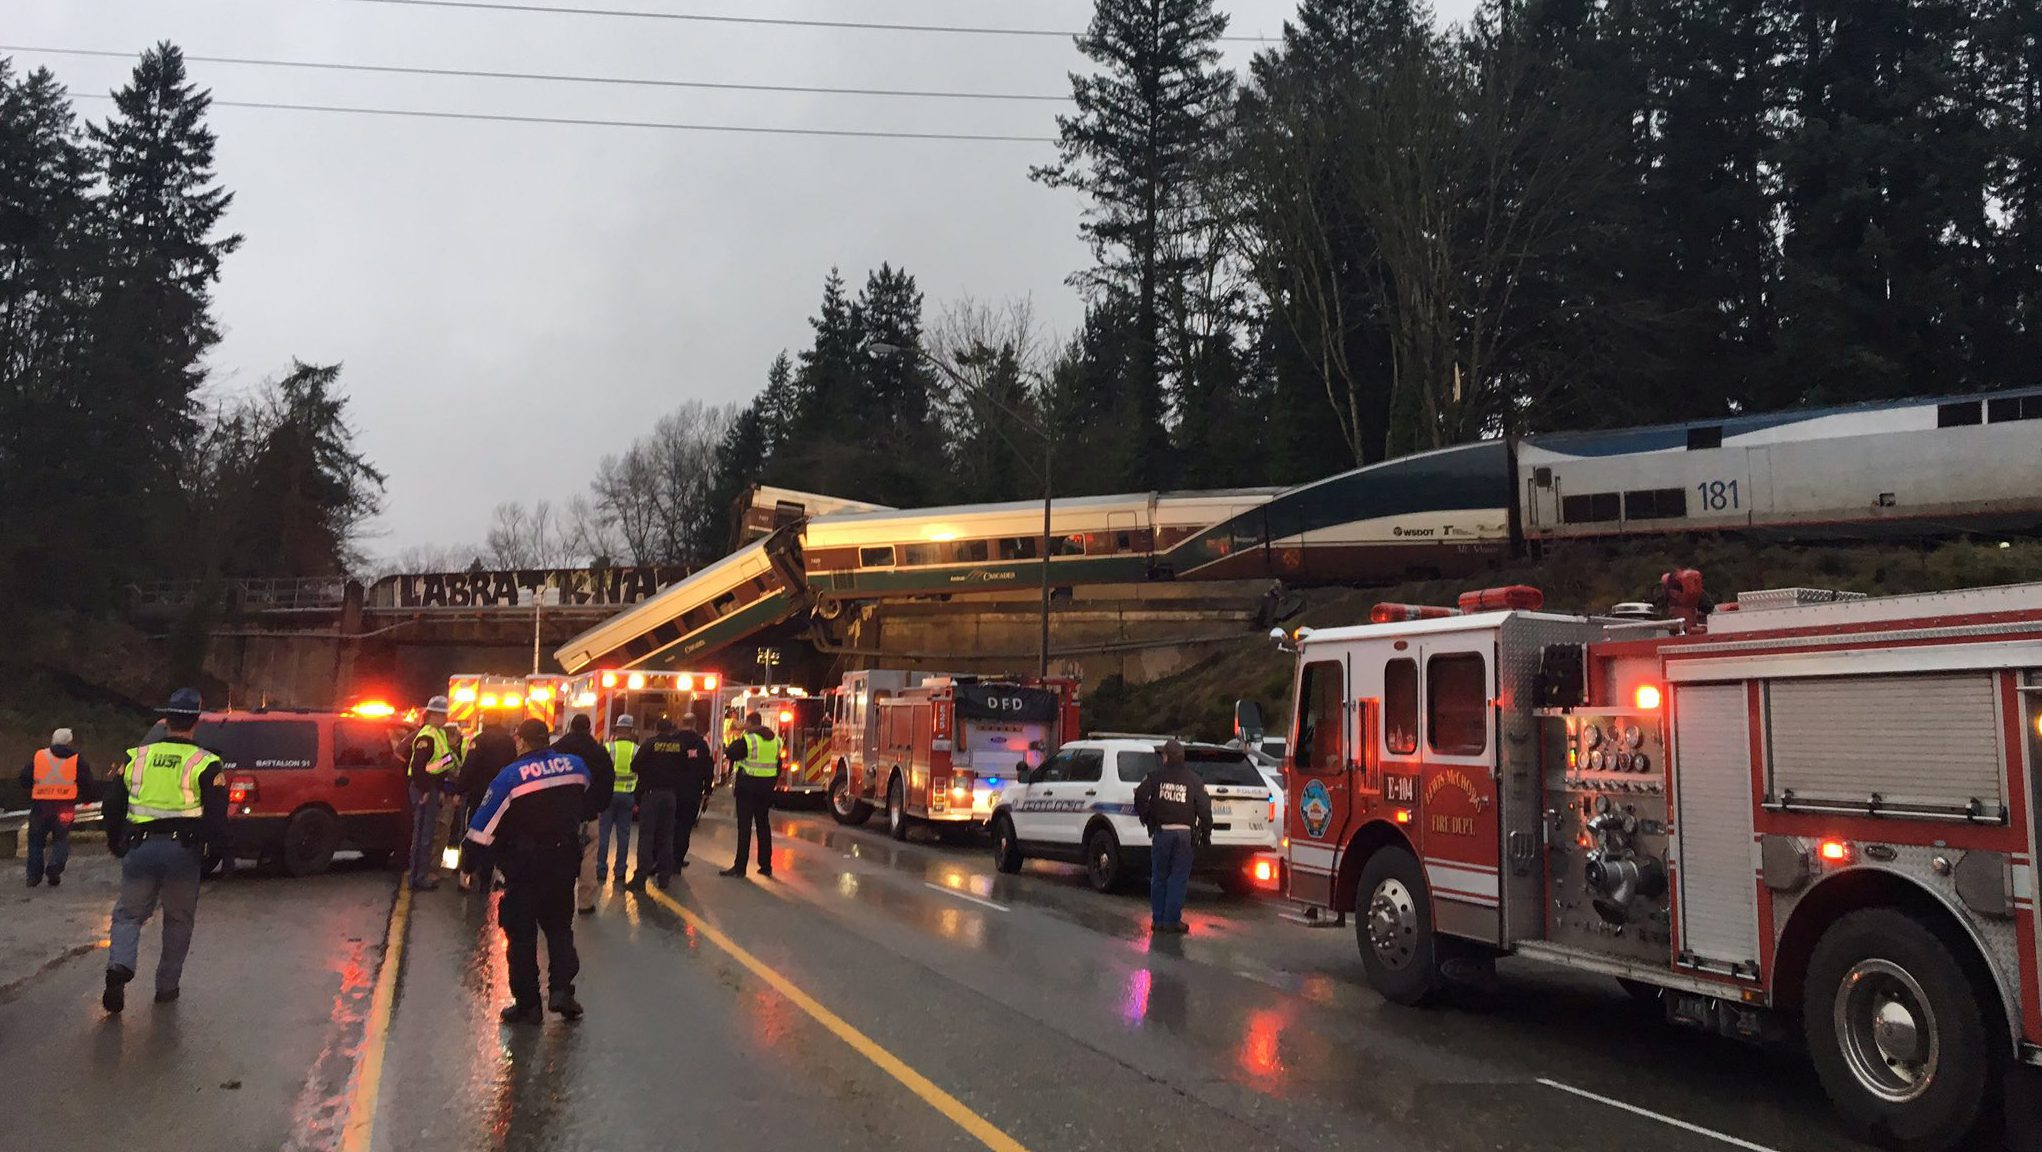 First responders are seen at the scene of an Amtrak passenger train derailment on interstate highway (I-5) in this Washington State Patrol image moved on social media in DuPont, Washington, U.S.